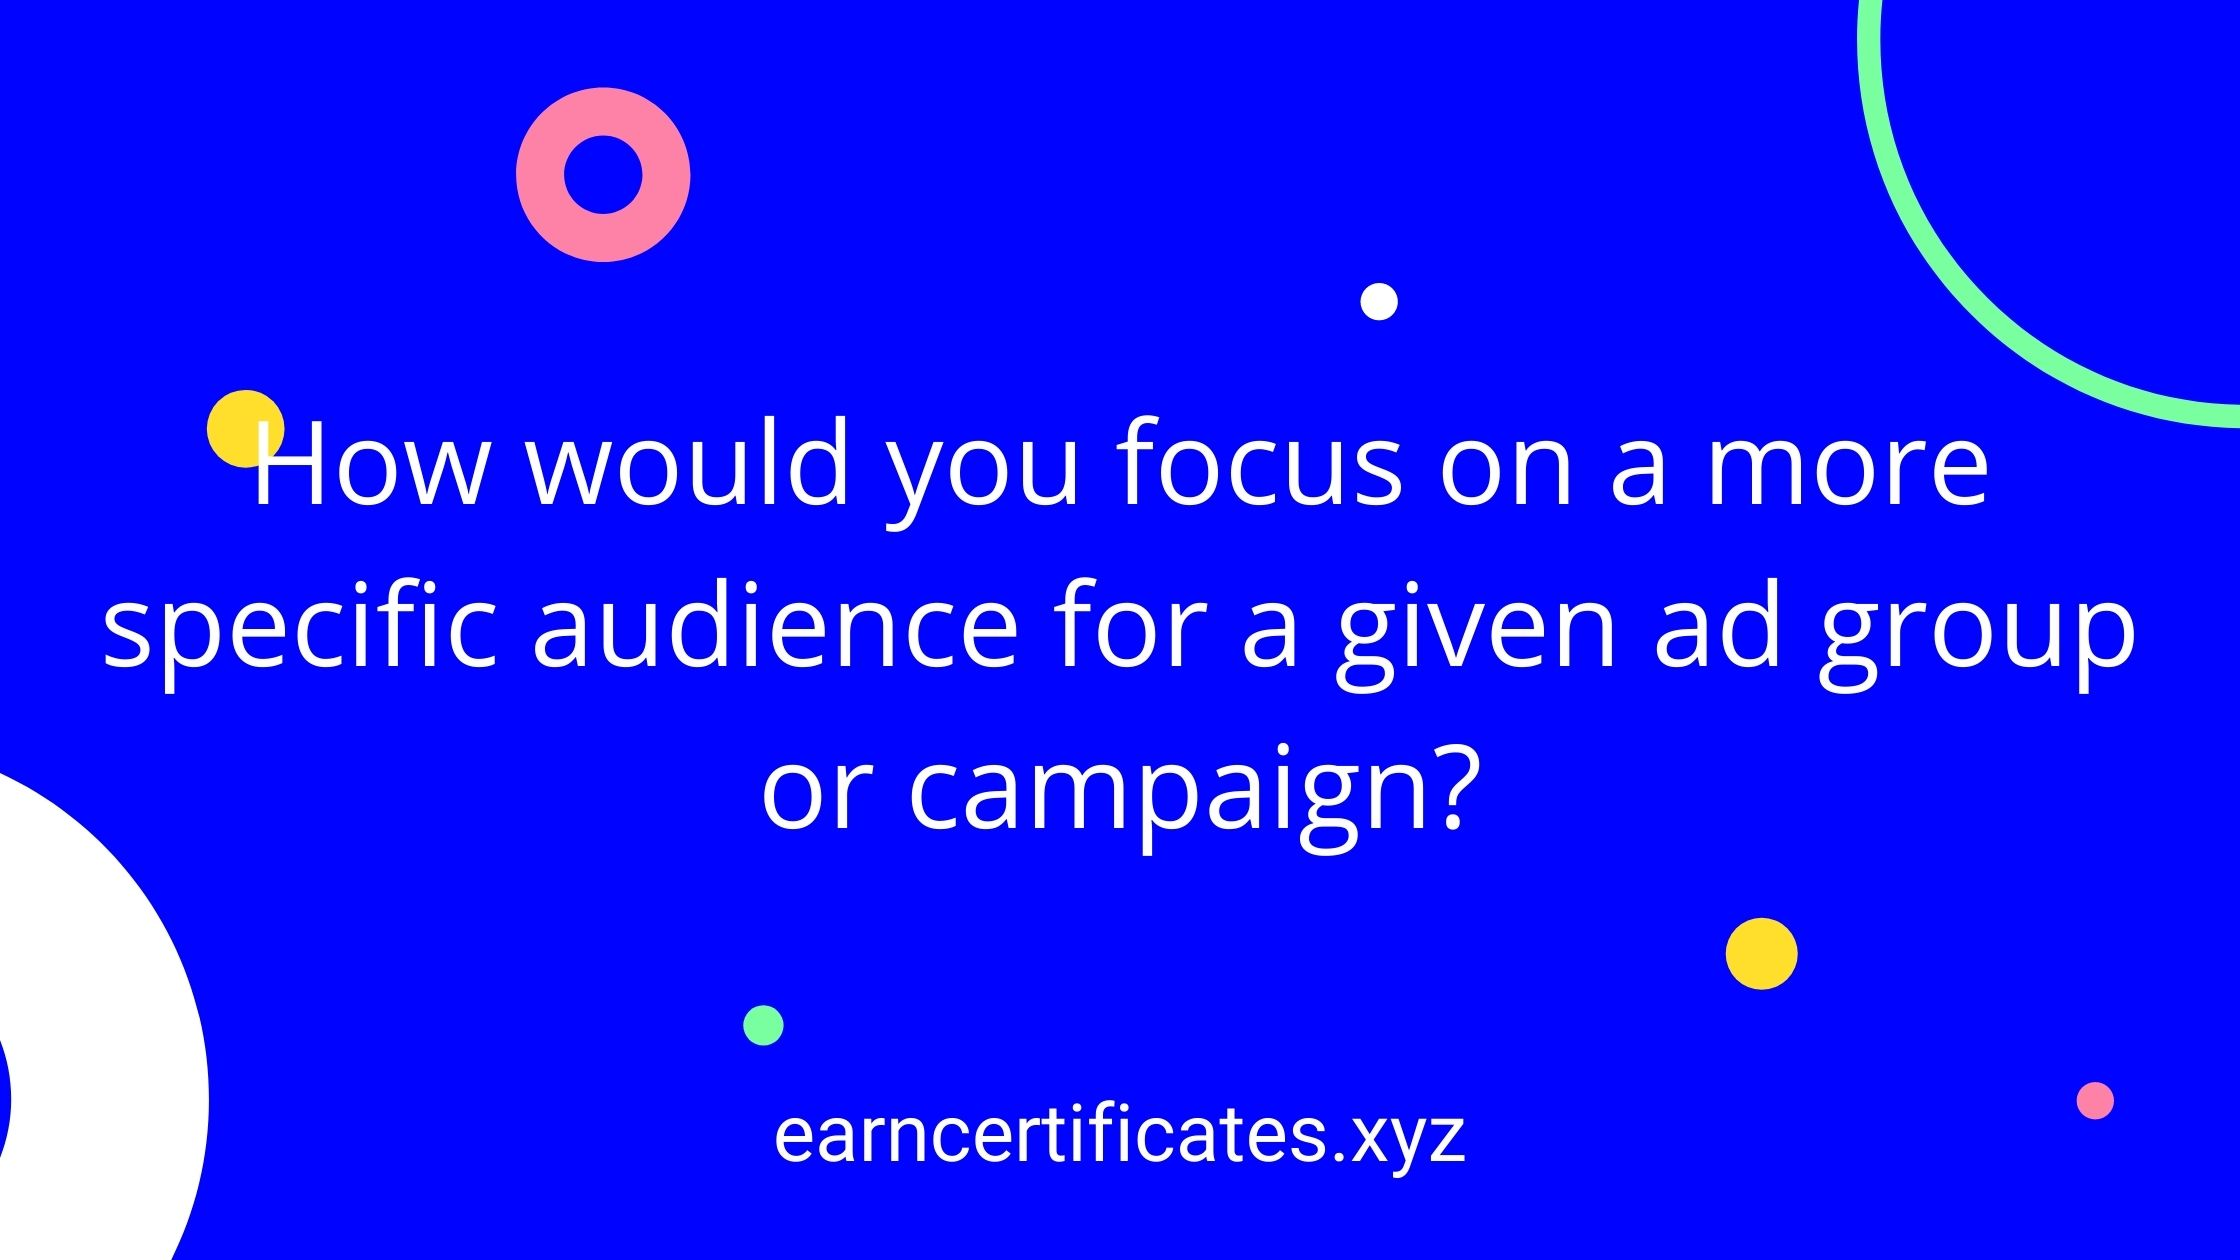 How would you focus on a more specific audience for a given ad group or campaign?